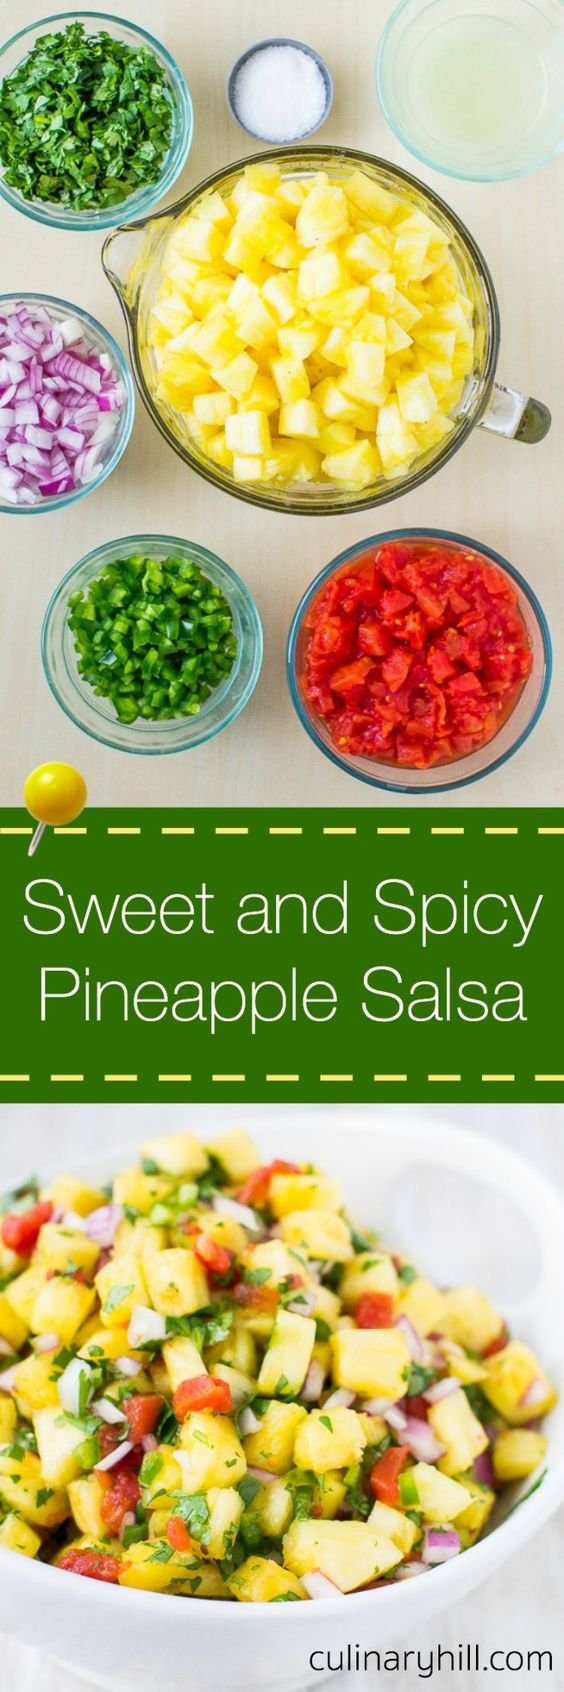 Sweet and Spicy Pineapple Salsa is your answer to summer snacking. It ...